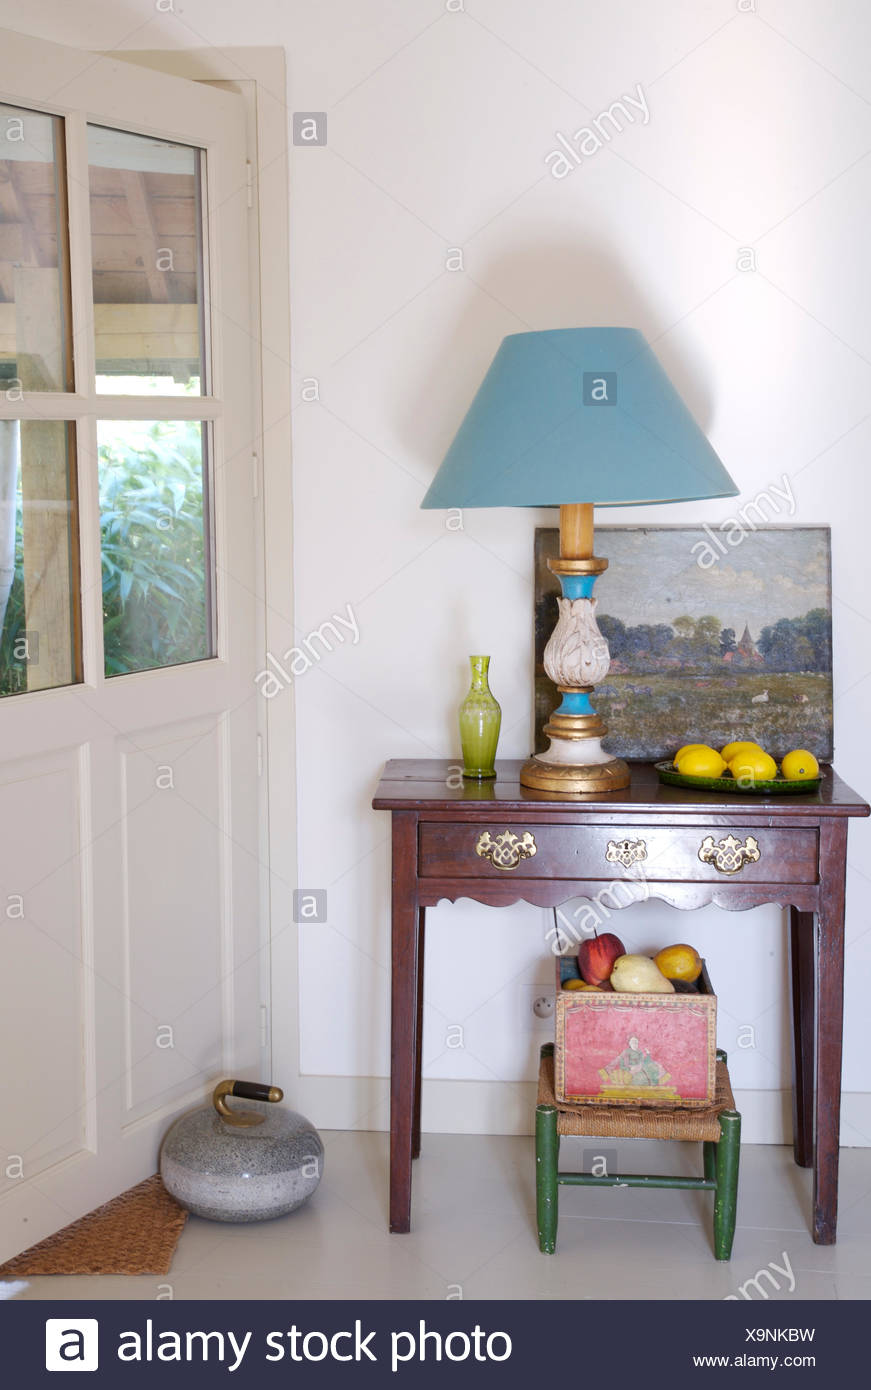 Vintage panting and blue lamp on small antique table in white French country hall - Stock Image